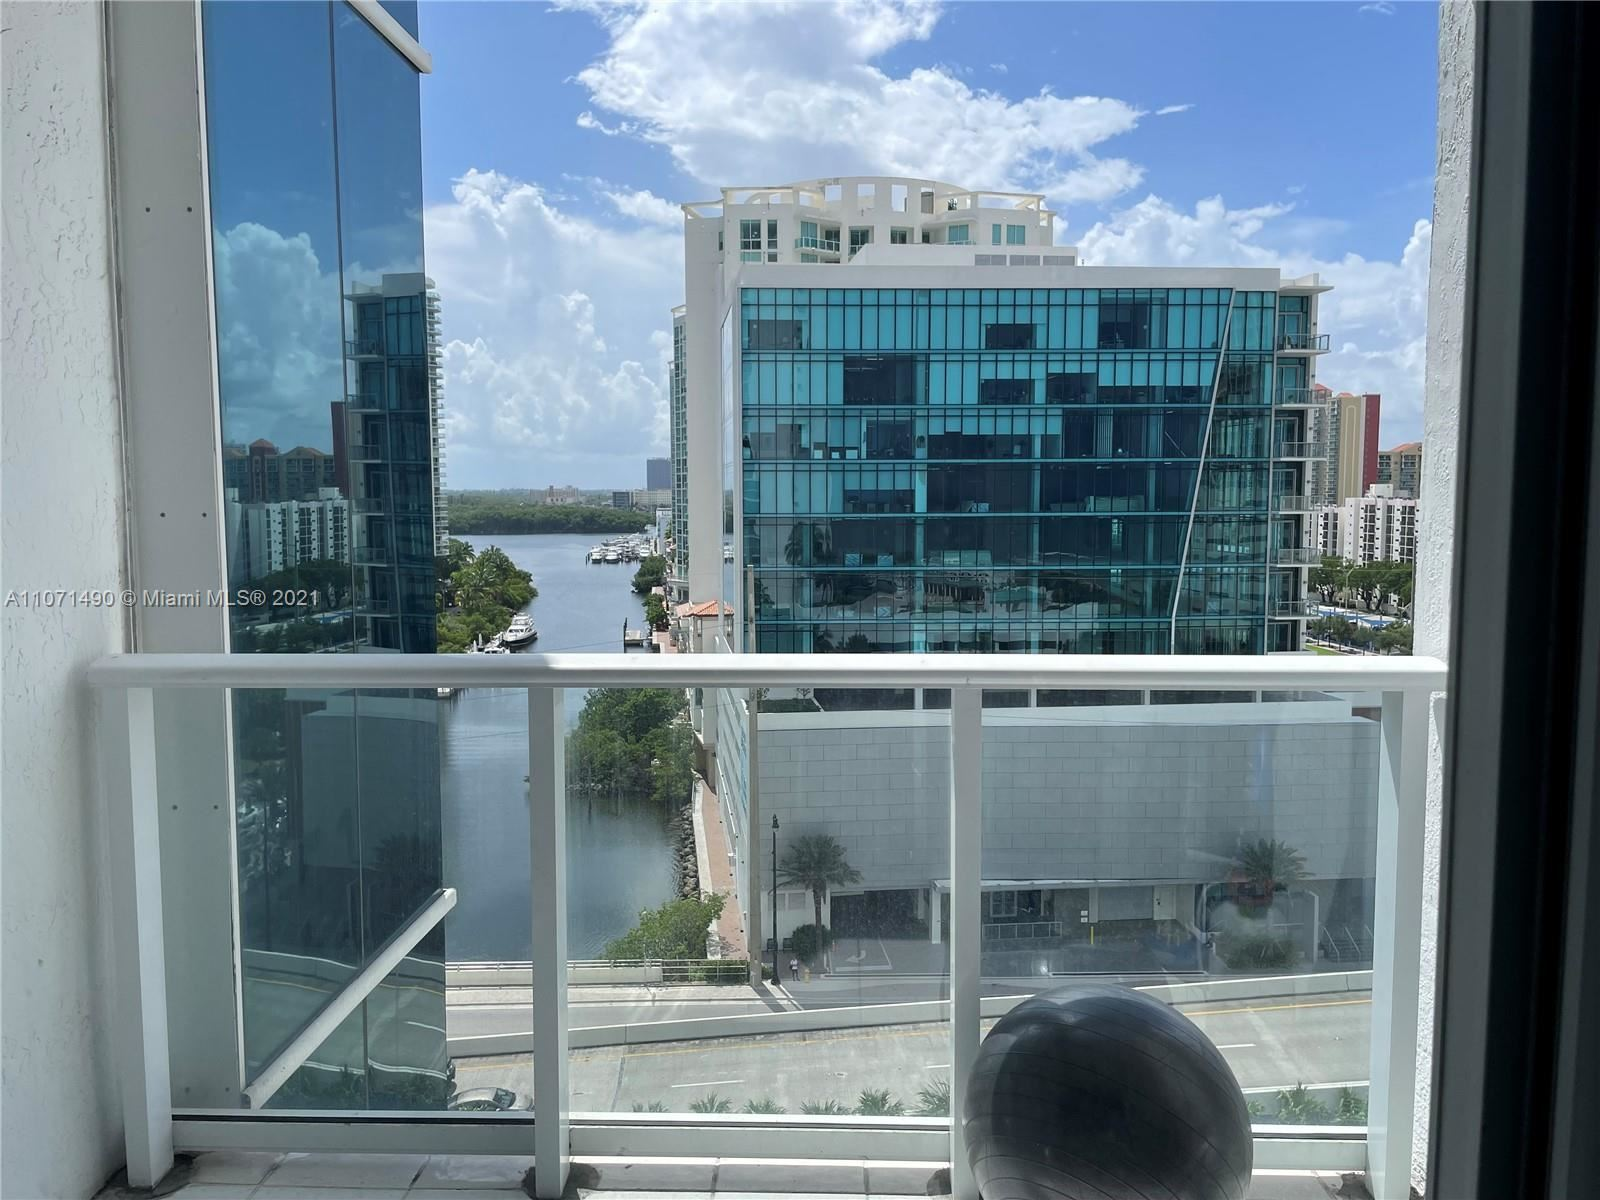 16485 Collins Ave #1034, Sunny Isles, FL 33160 - #: A11071490